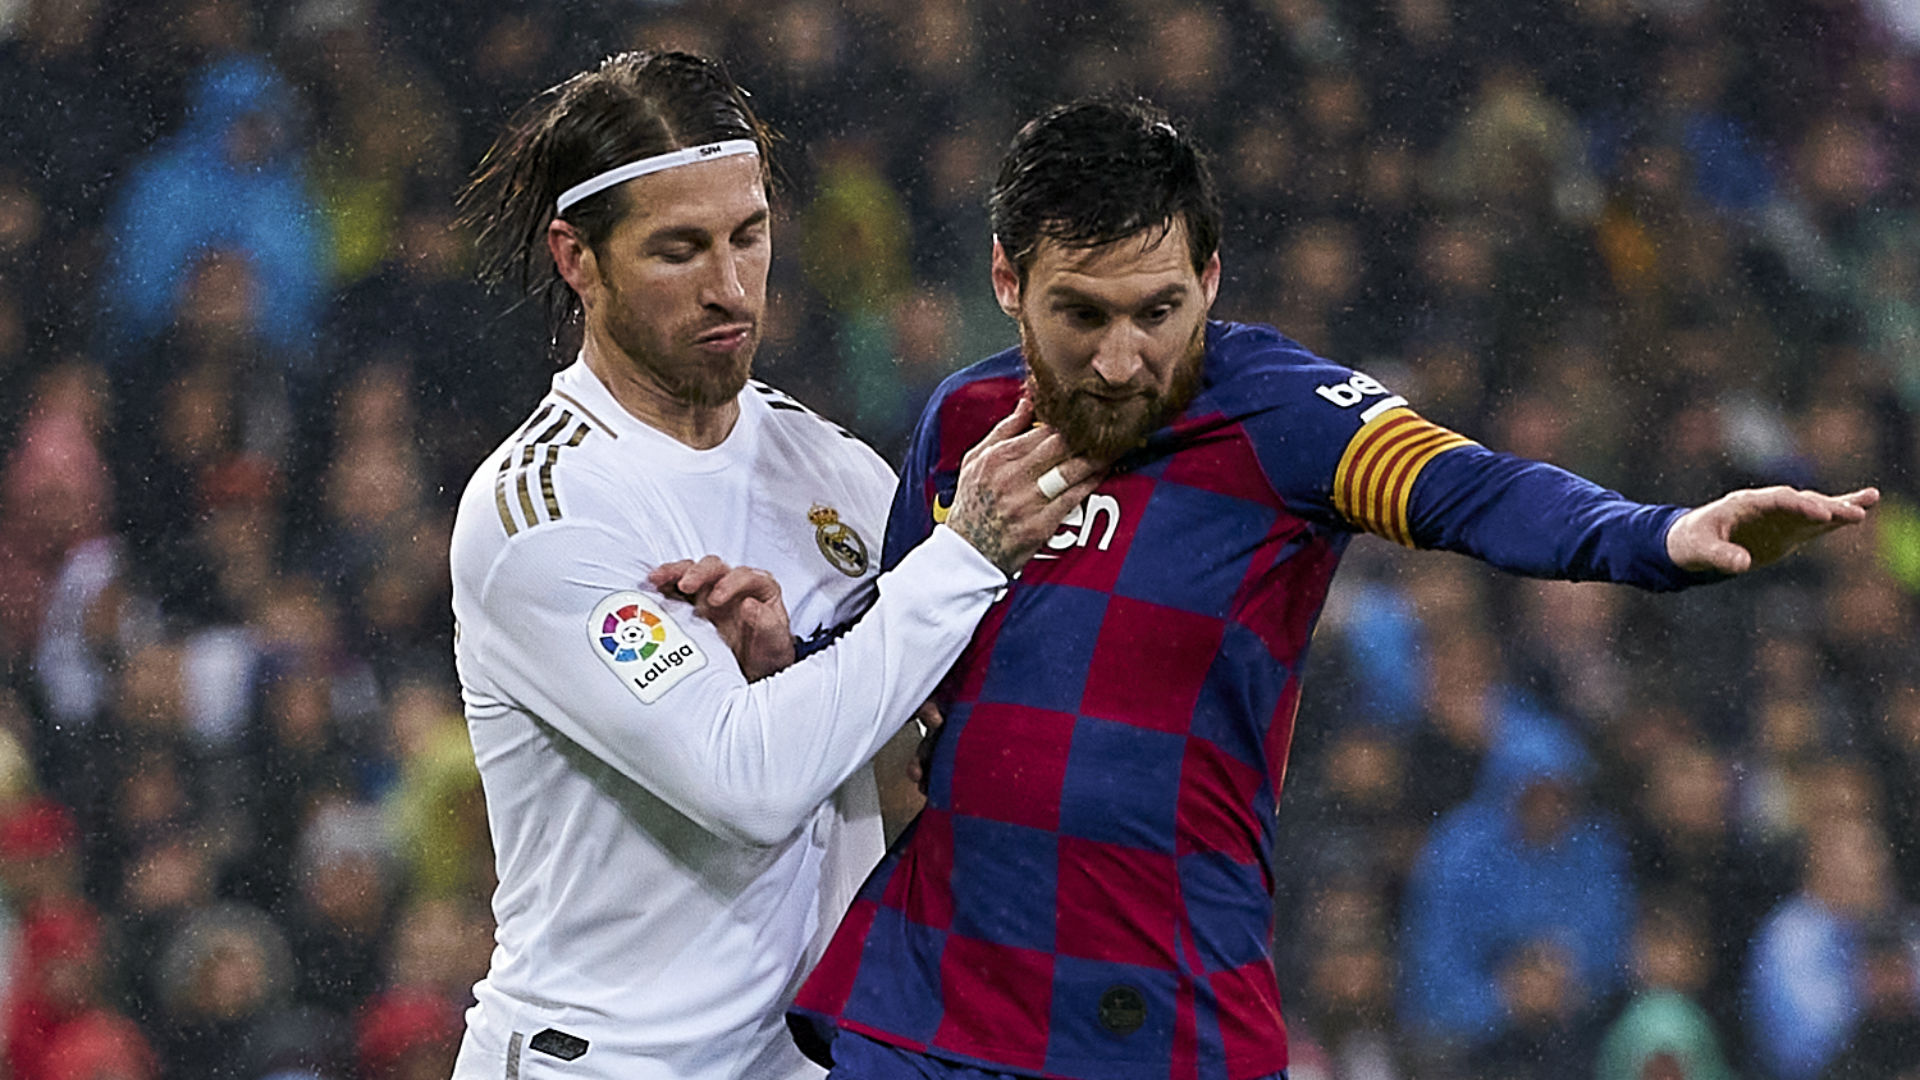 Tebas wants Messi and Ramos to stay in LaLiga, criticises Man City